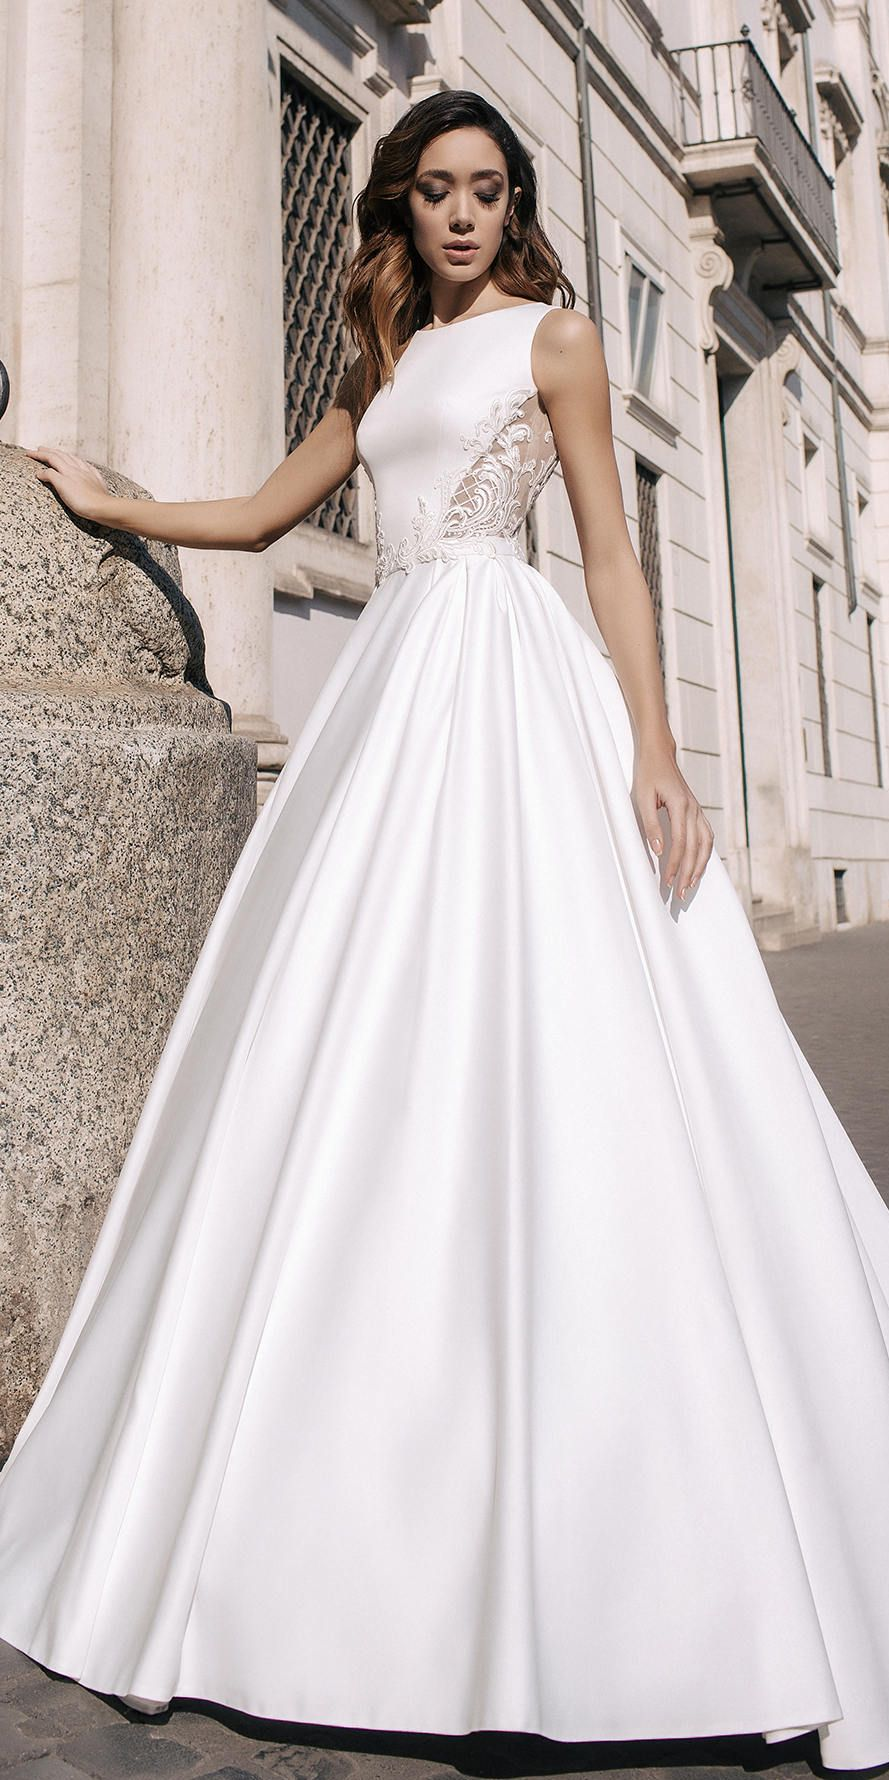 Backless A Line Satin Wedding Dress Stunning Ball Gown With Lace Top ...